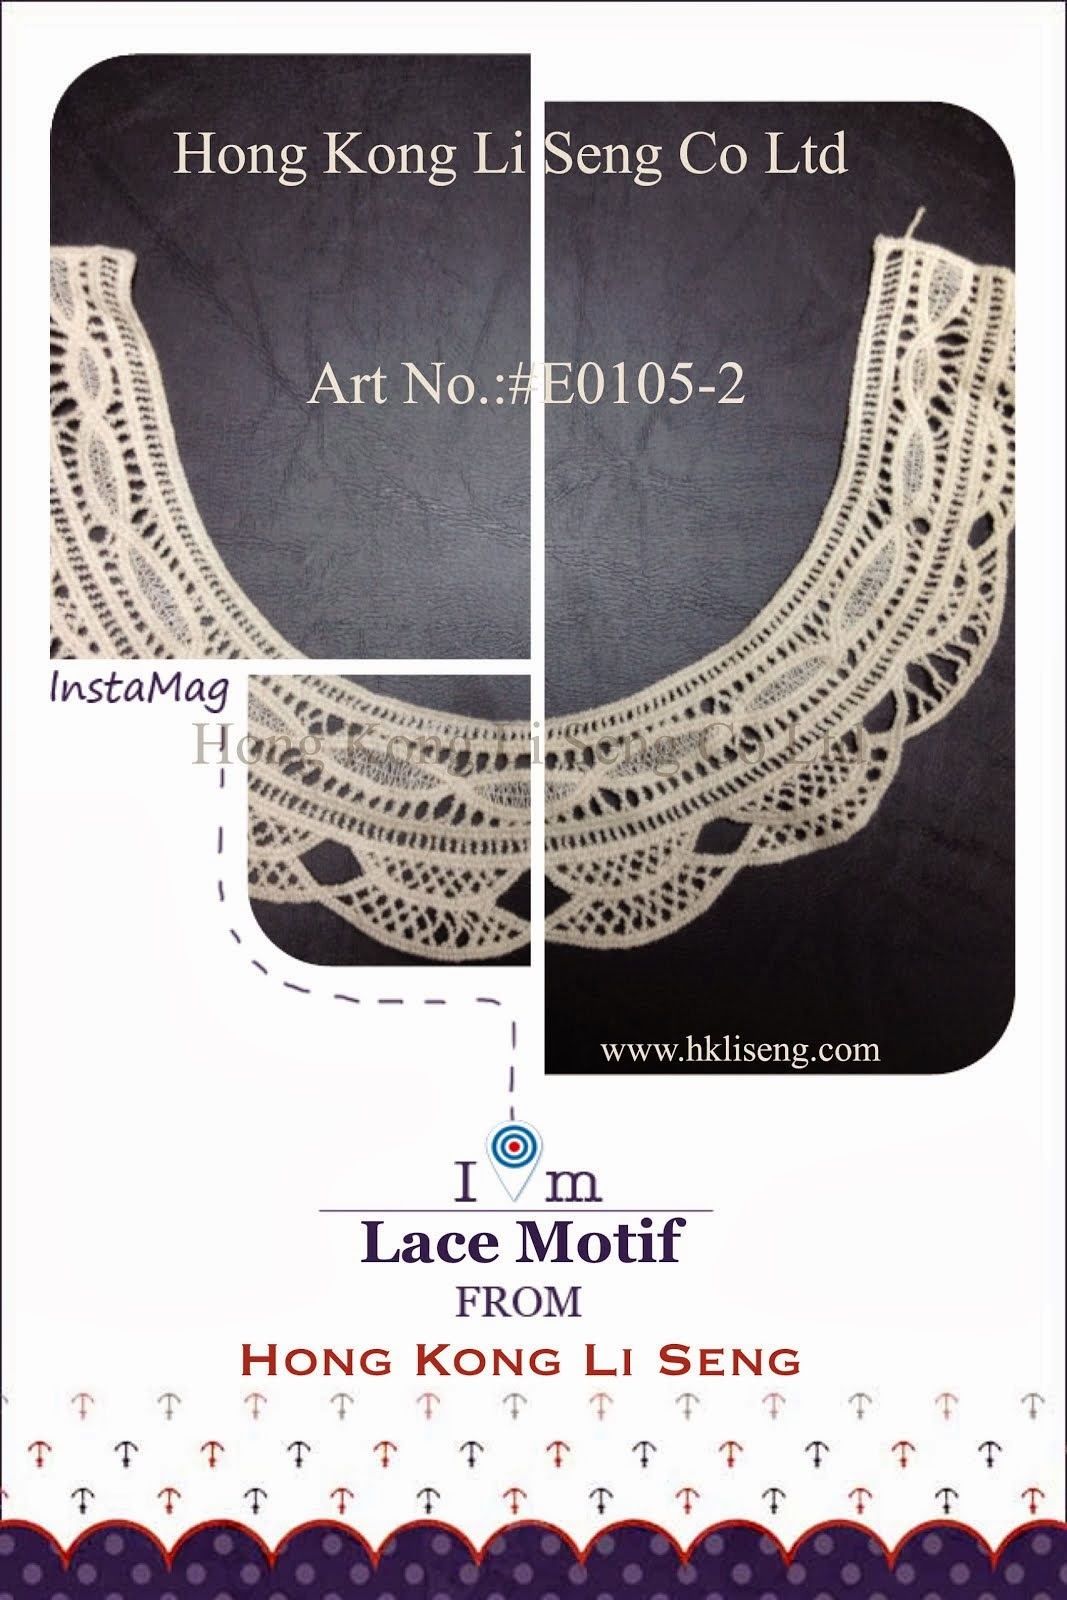 Lace Trims Manufacturer - Support all Designer for New Brand Name Fashion Collection